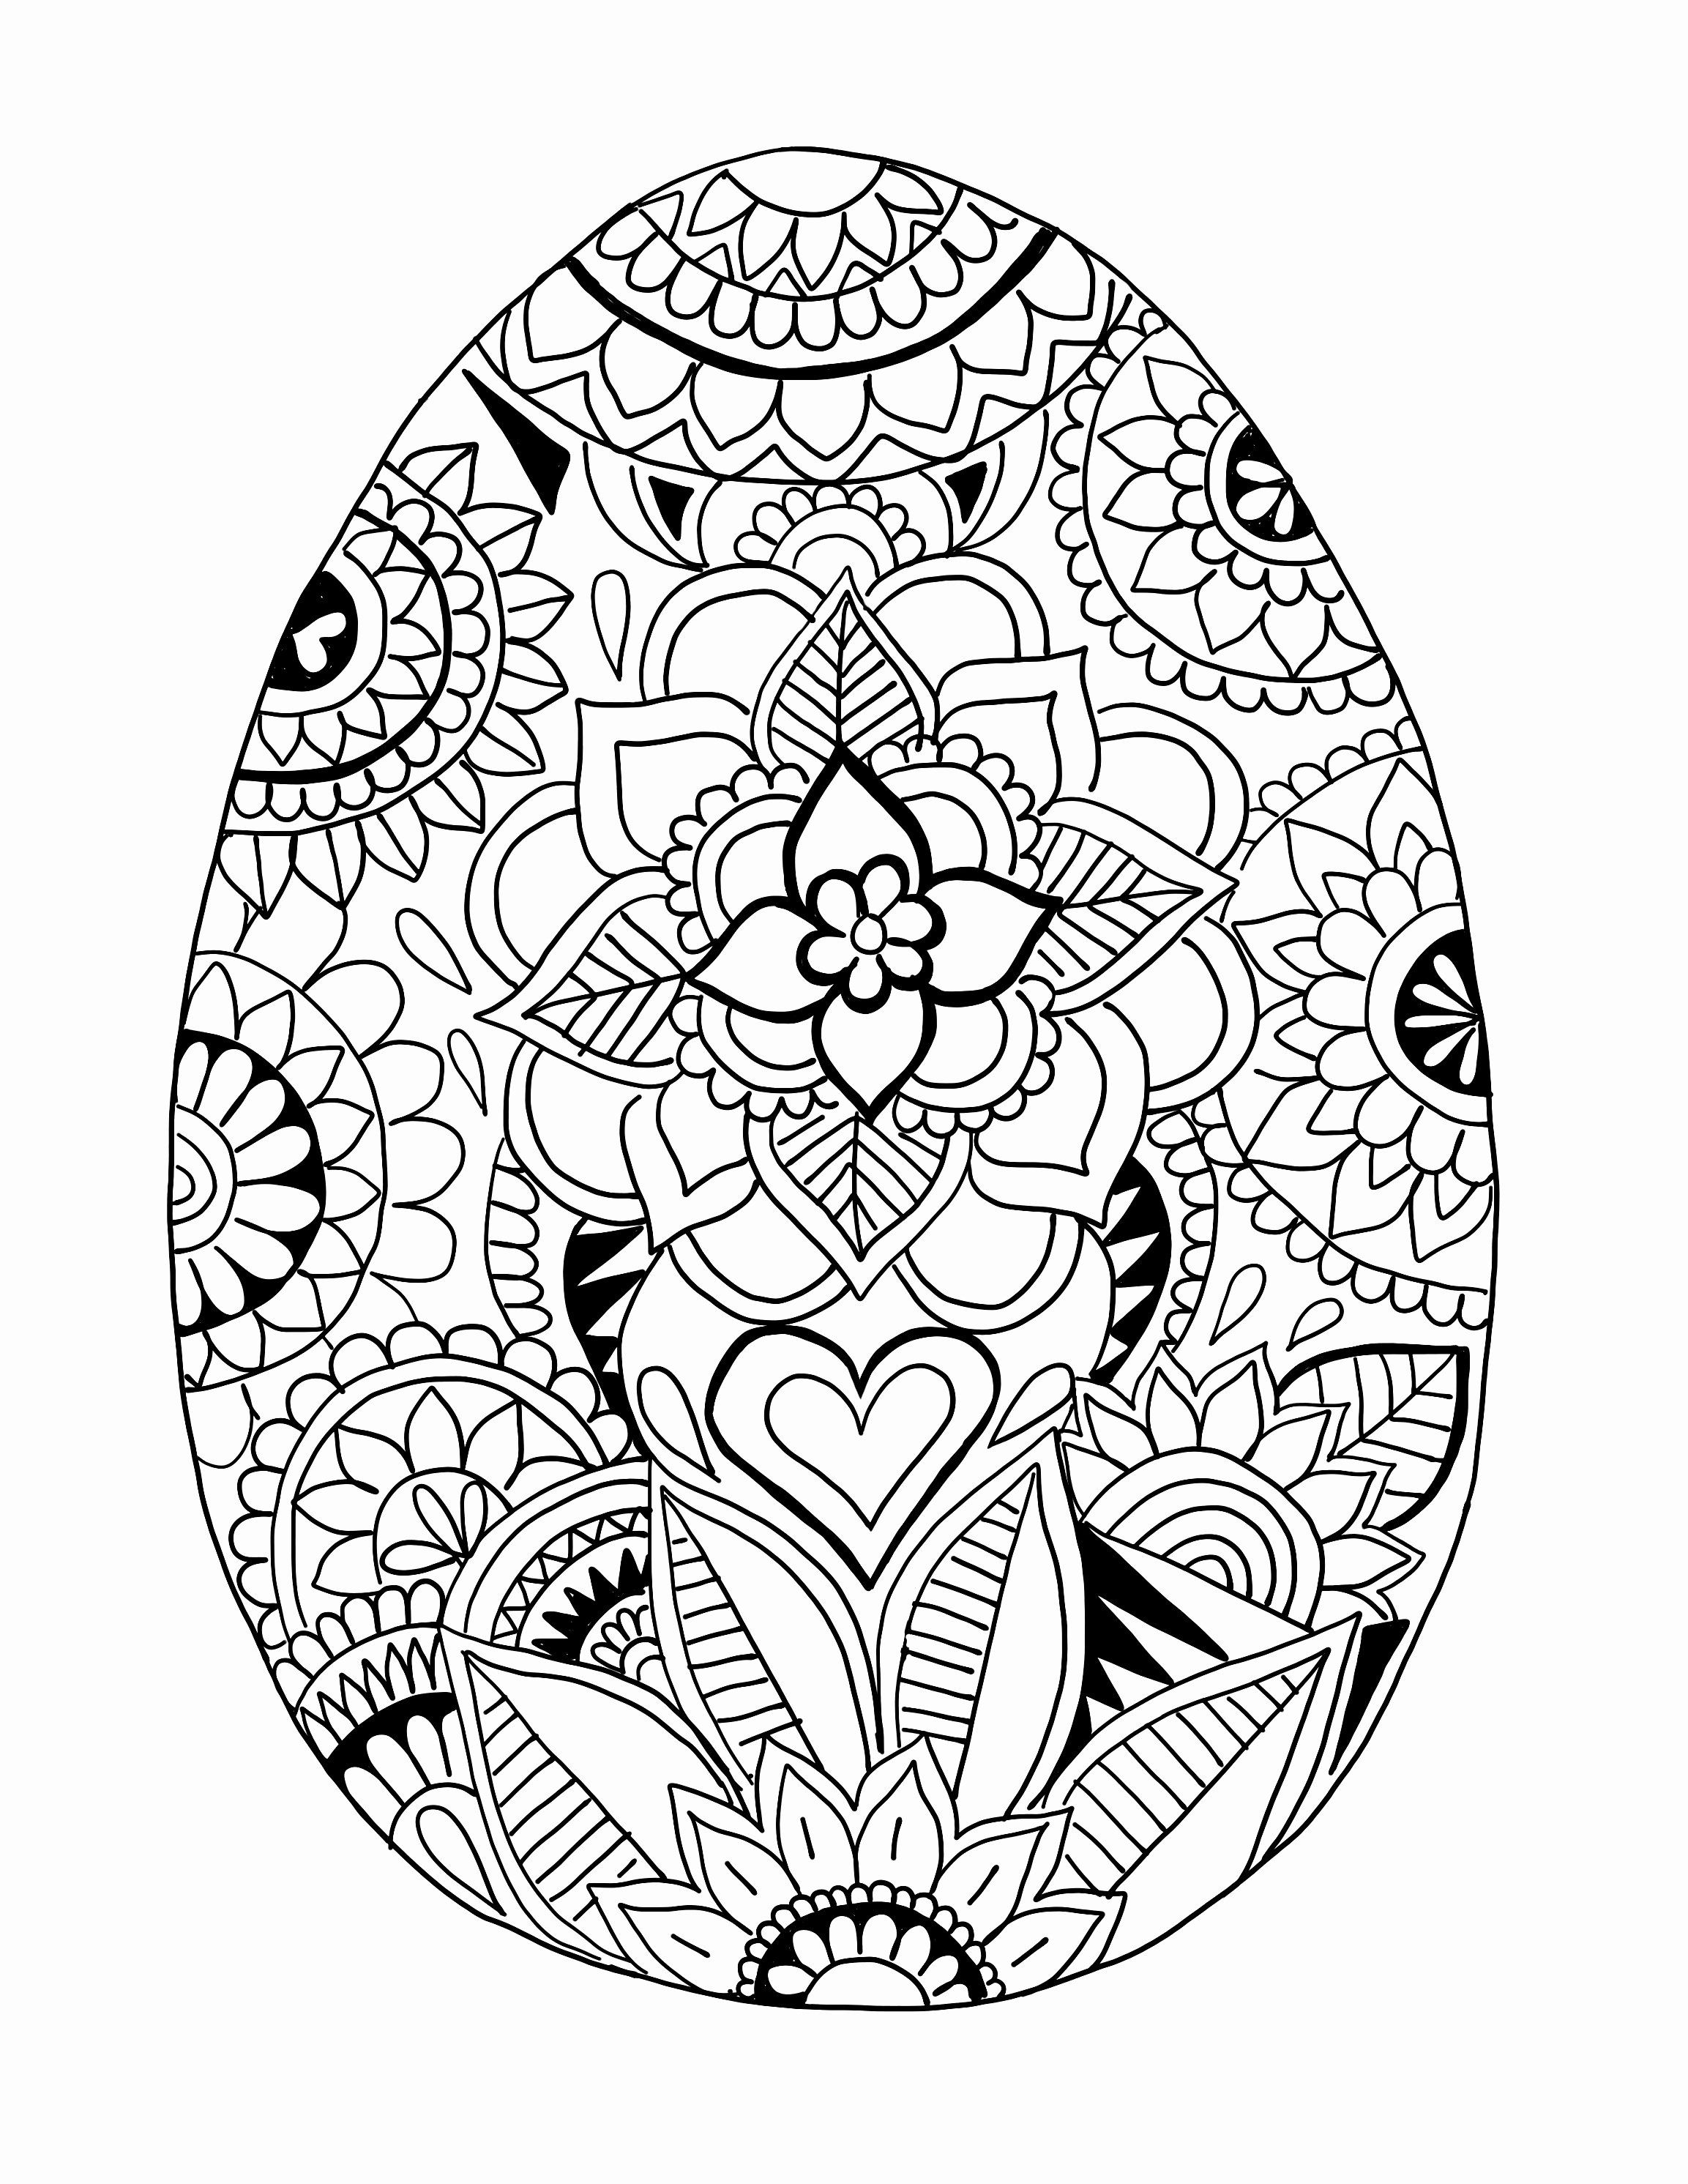 Easter Egg Hunt Coloring Page Unique Coloring Book World Zentangle Easter Eggs For Color In 2020 Easter Coloring Pictures Easter Coloring Pages Printable Coloring Eggs